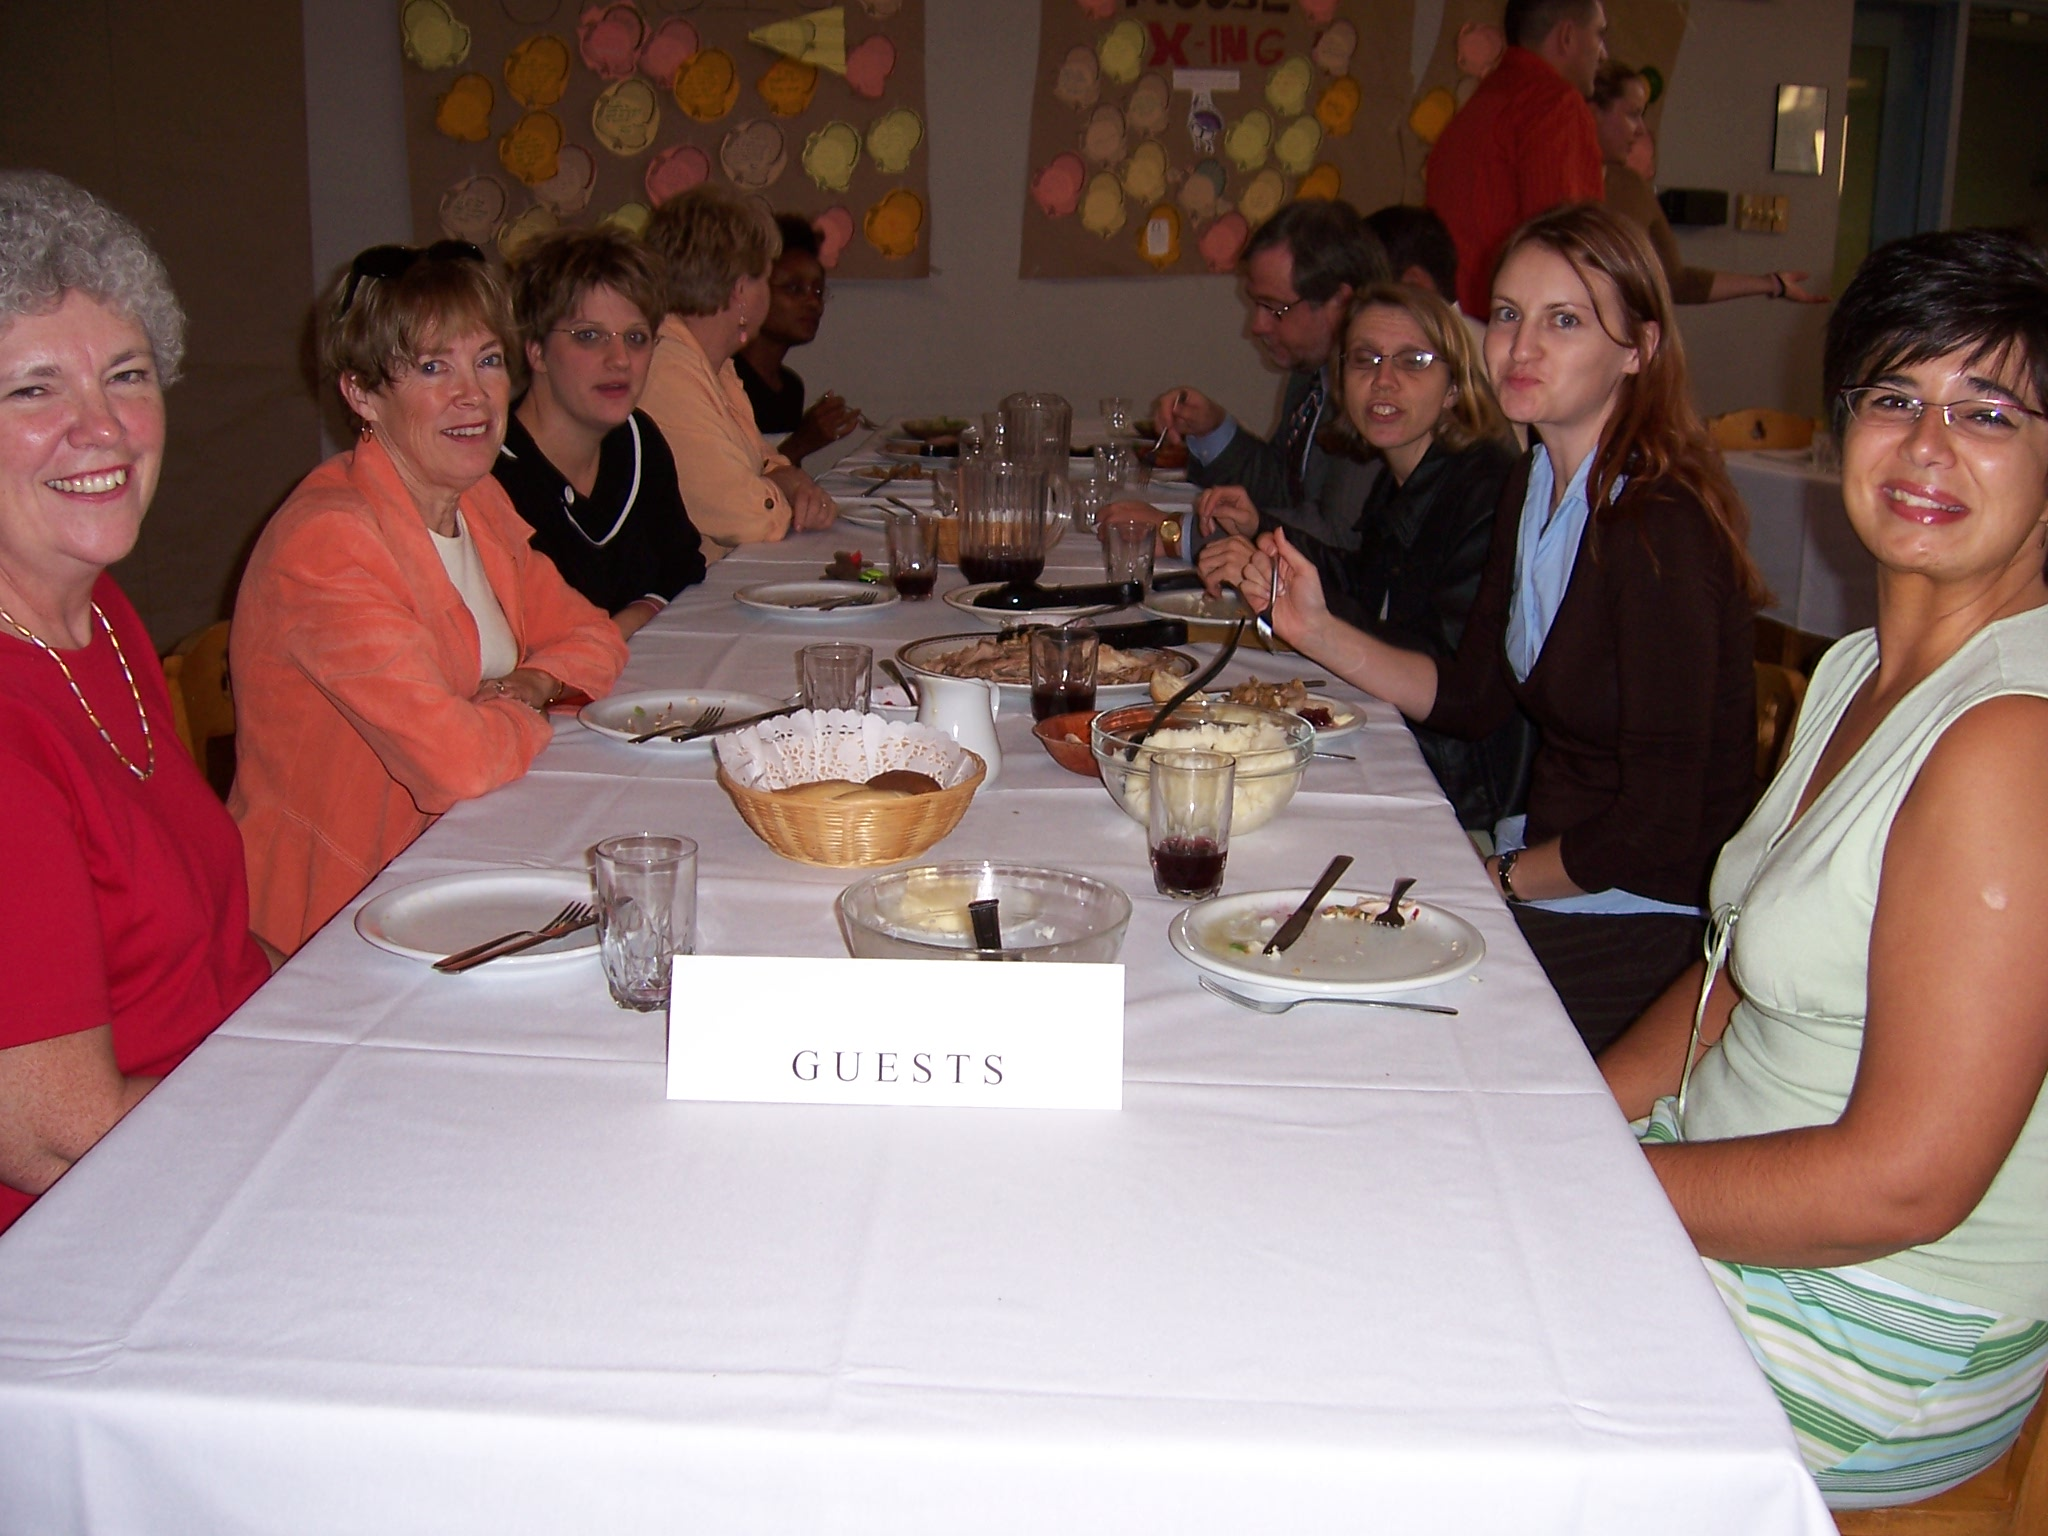 Guests at College Dinner